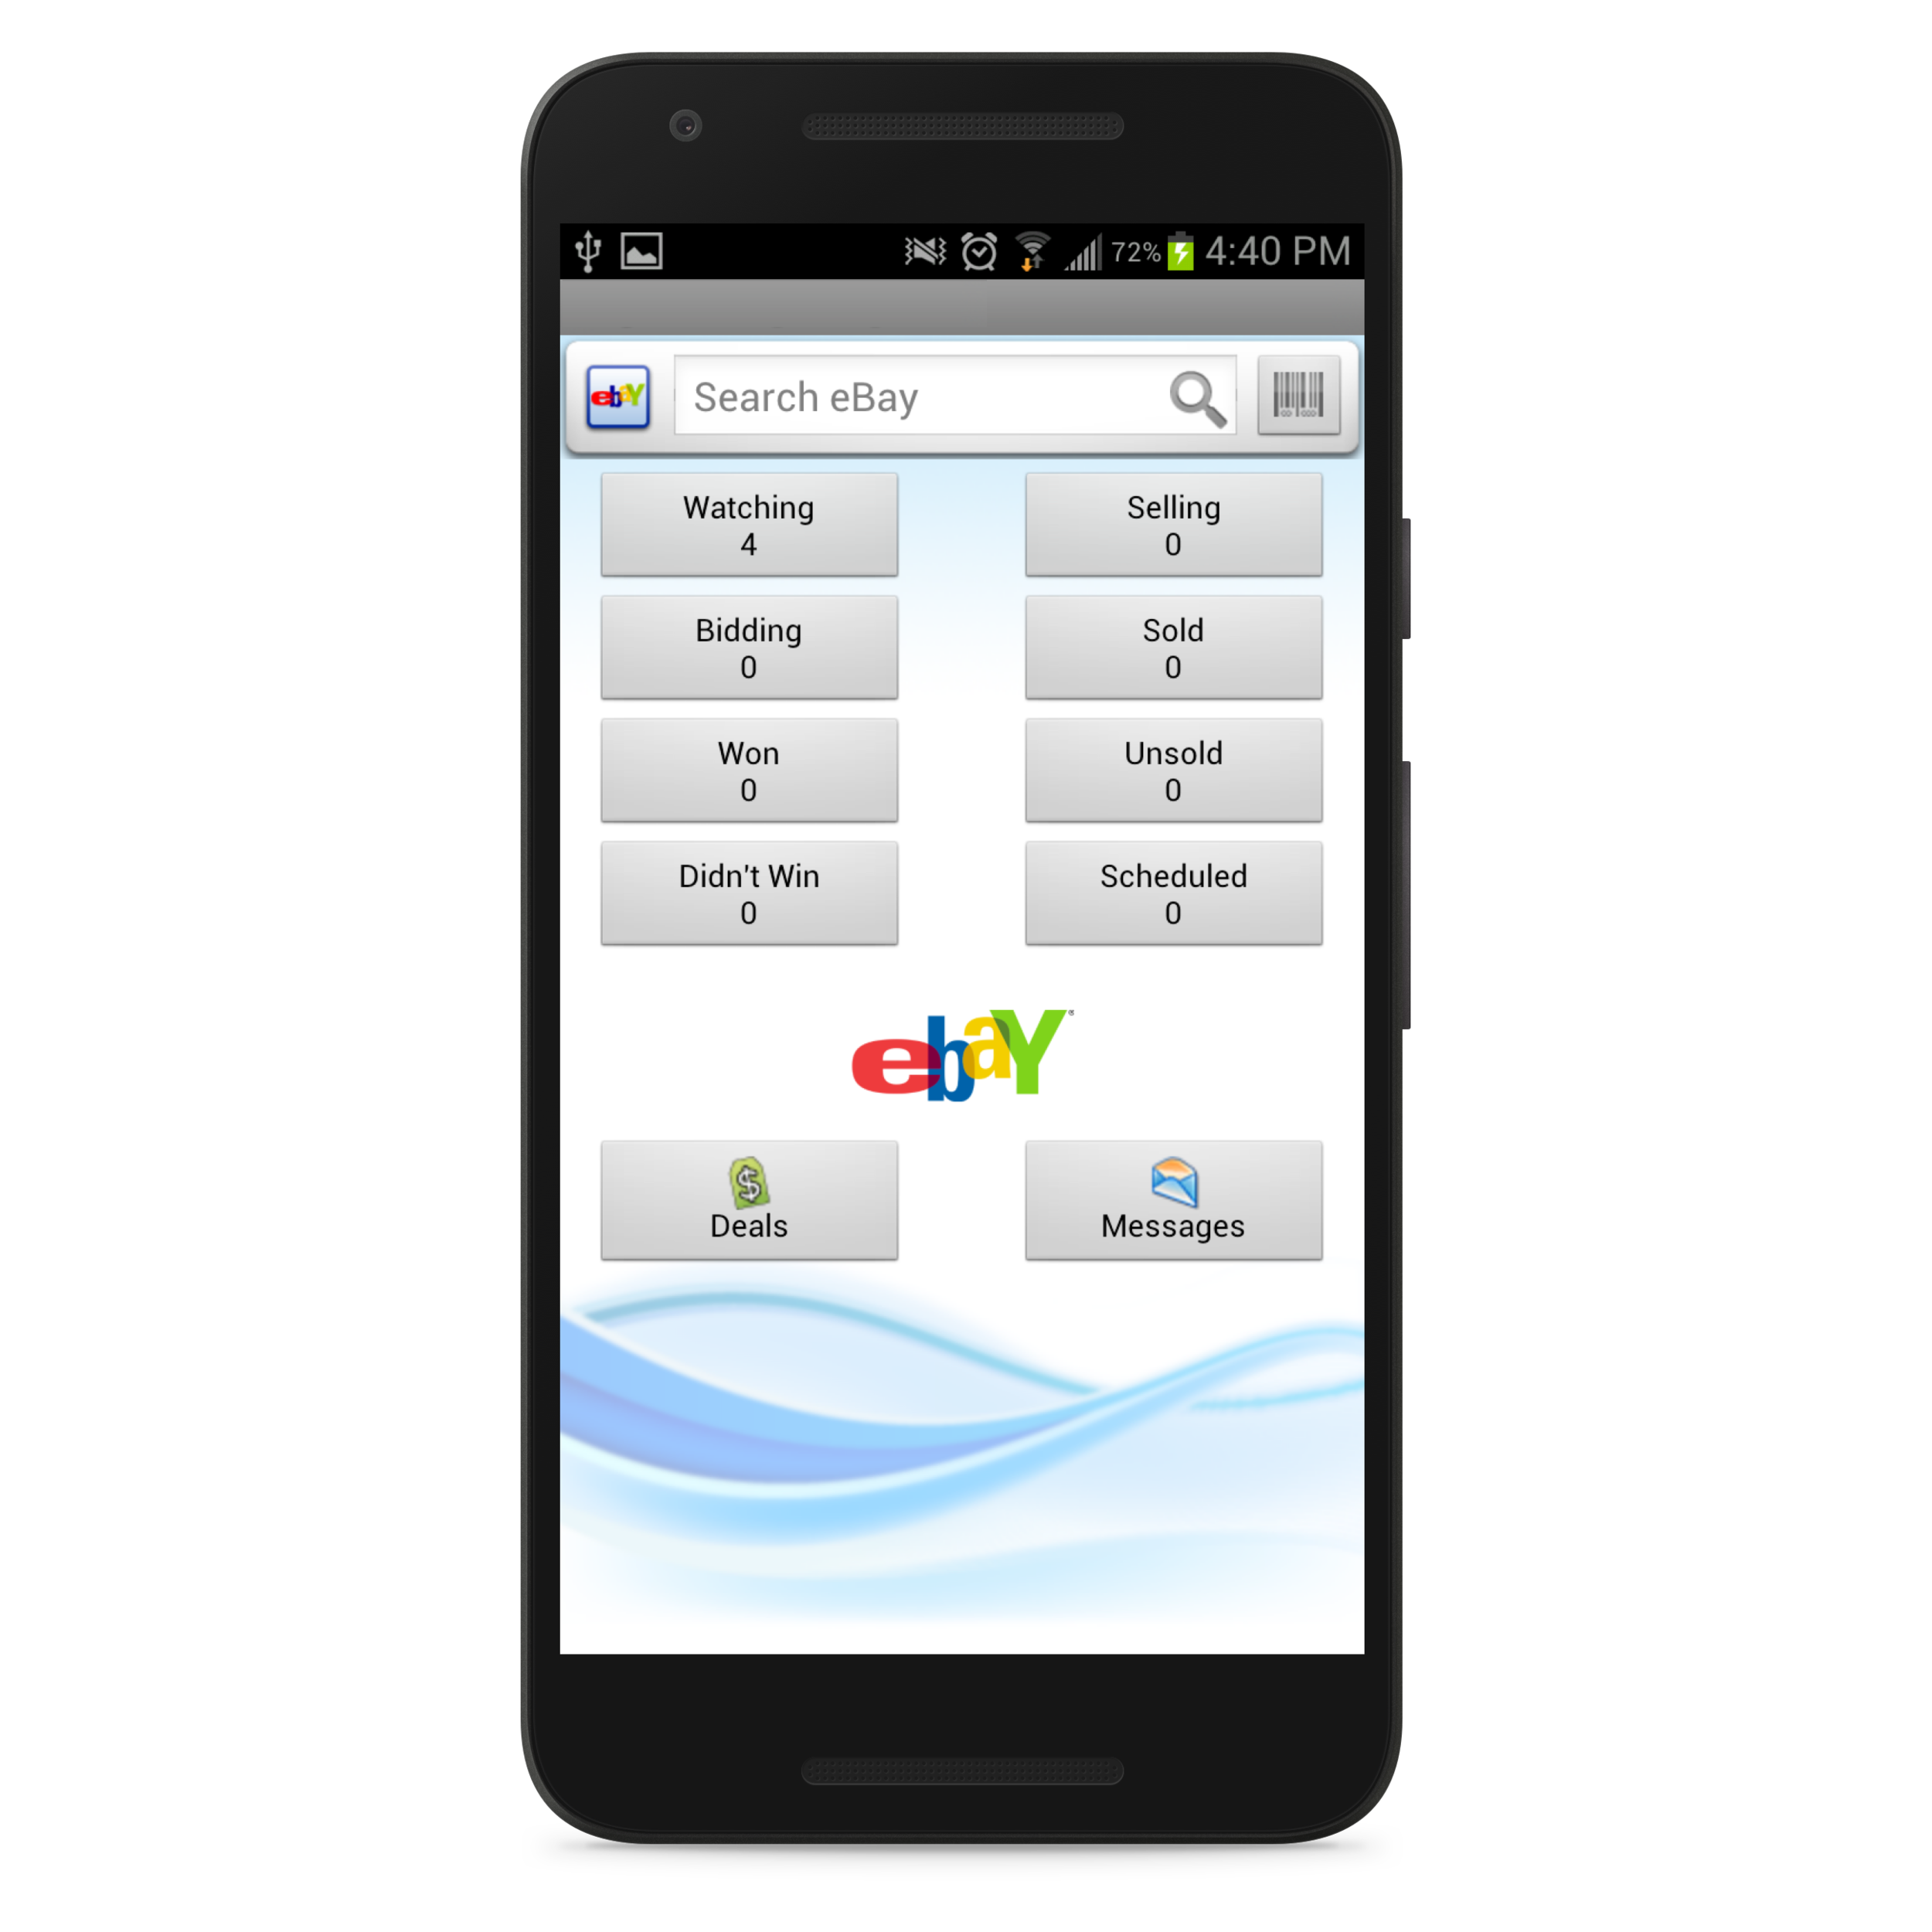 ebay-android-1.3.png